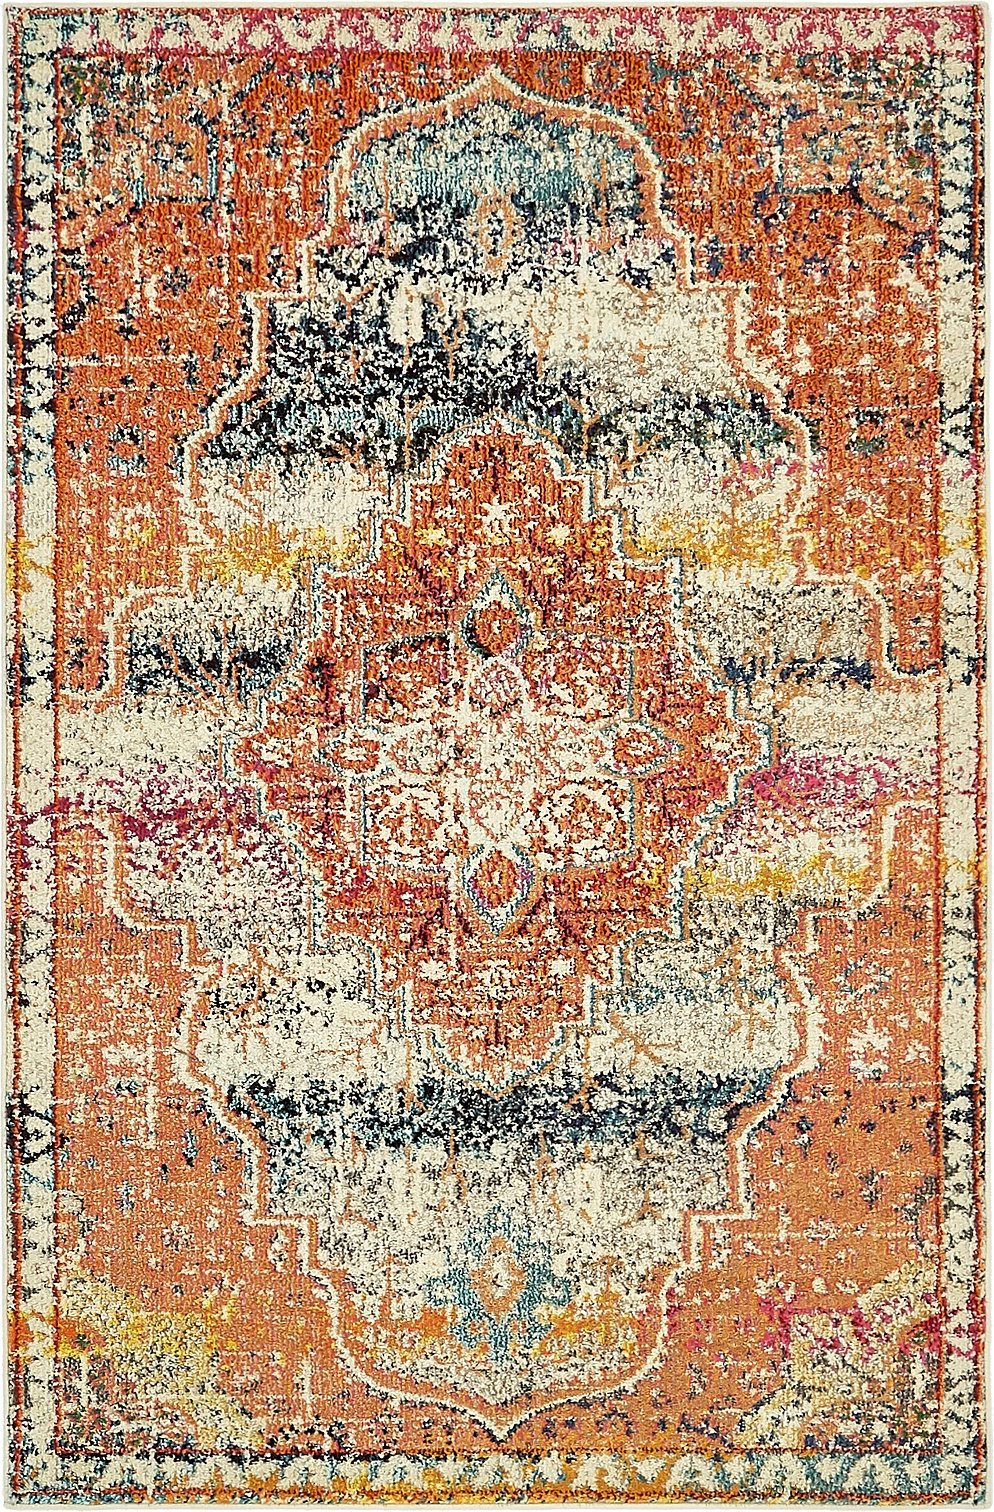 A2Z Rug Modern Contemporary & Traditional Design Rugs, Multi 4' x 6'-Feet Milano Collection Area rug